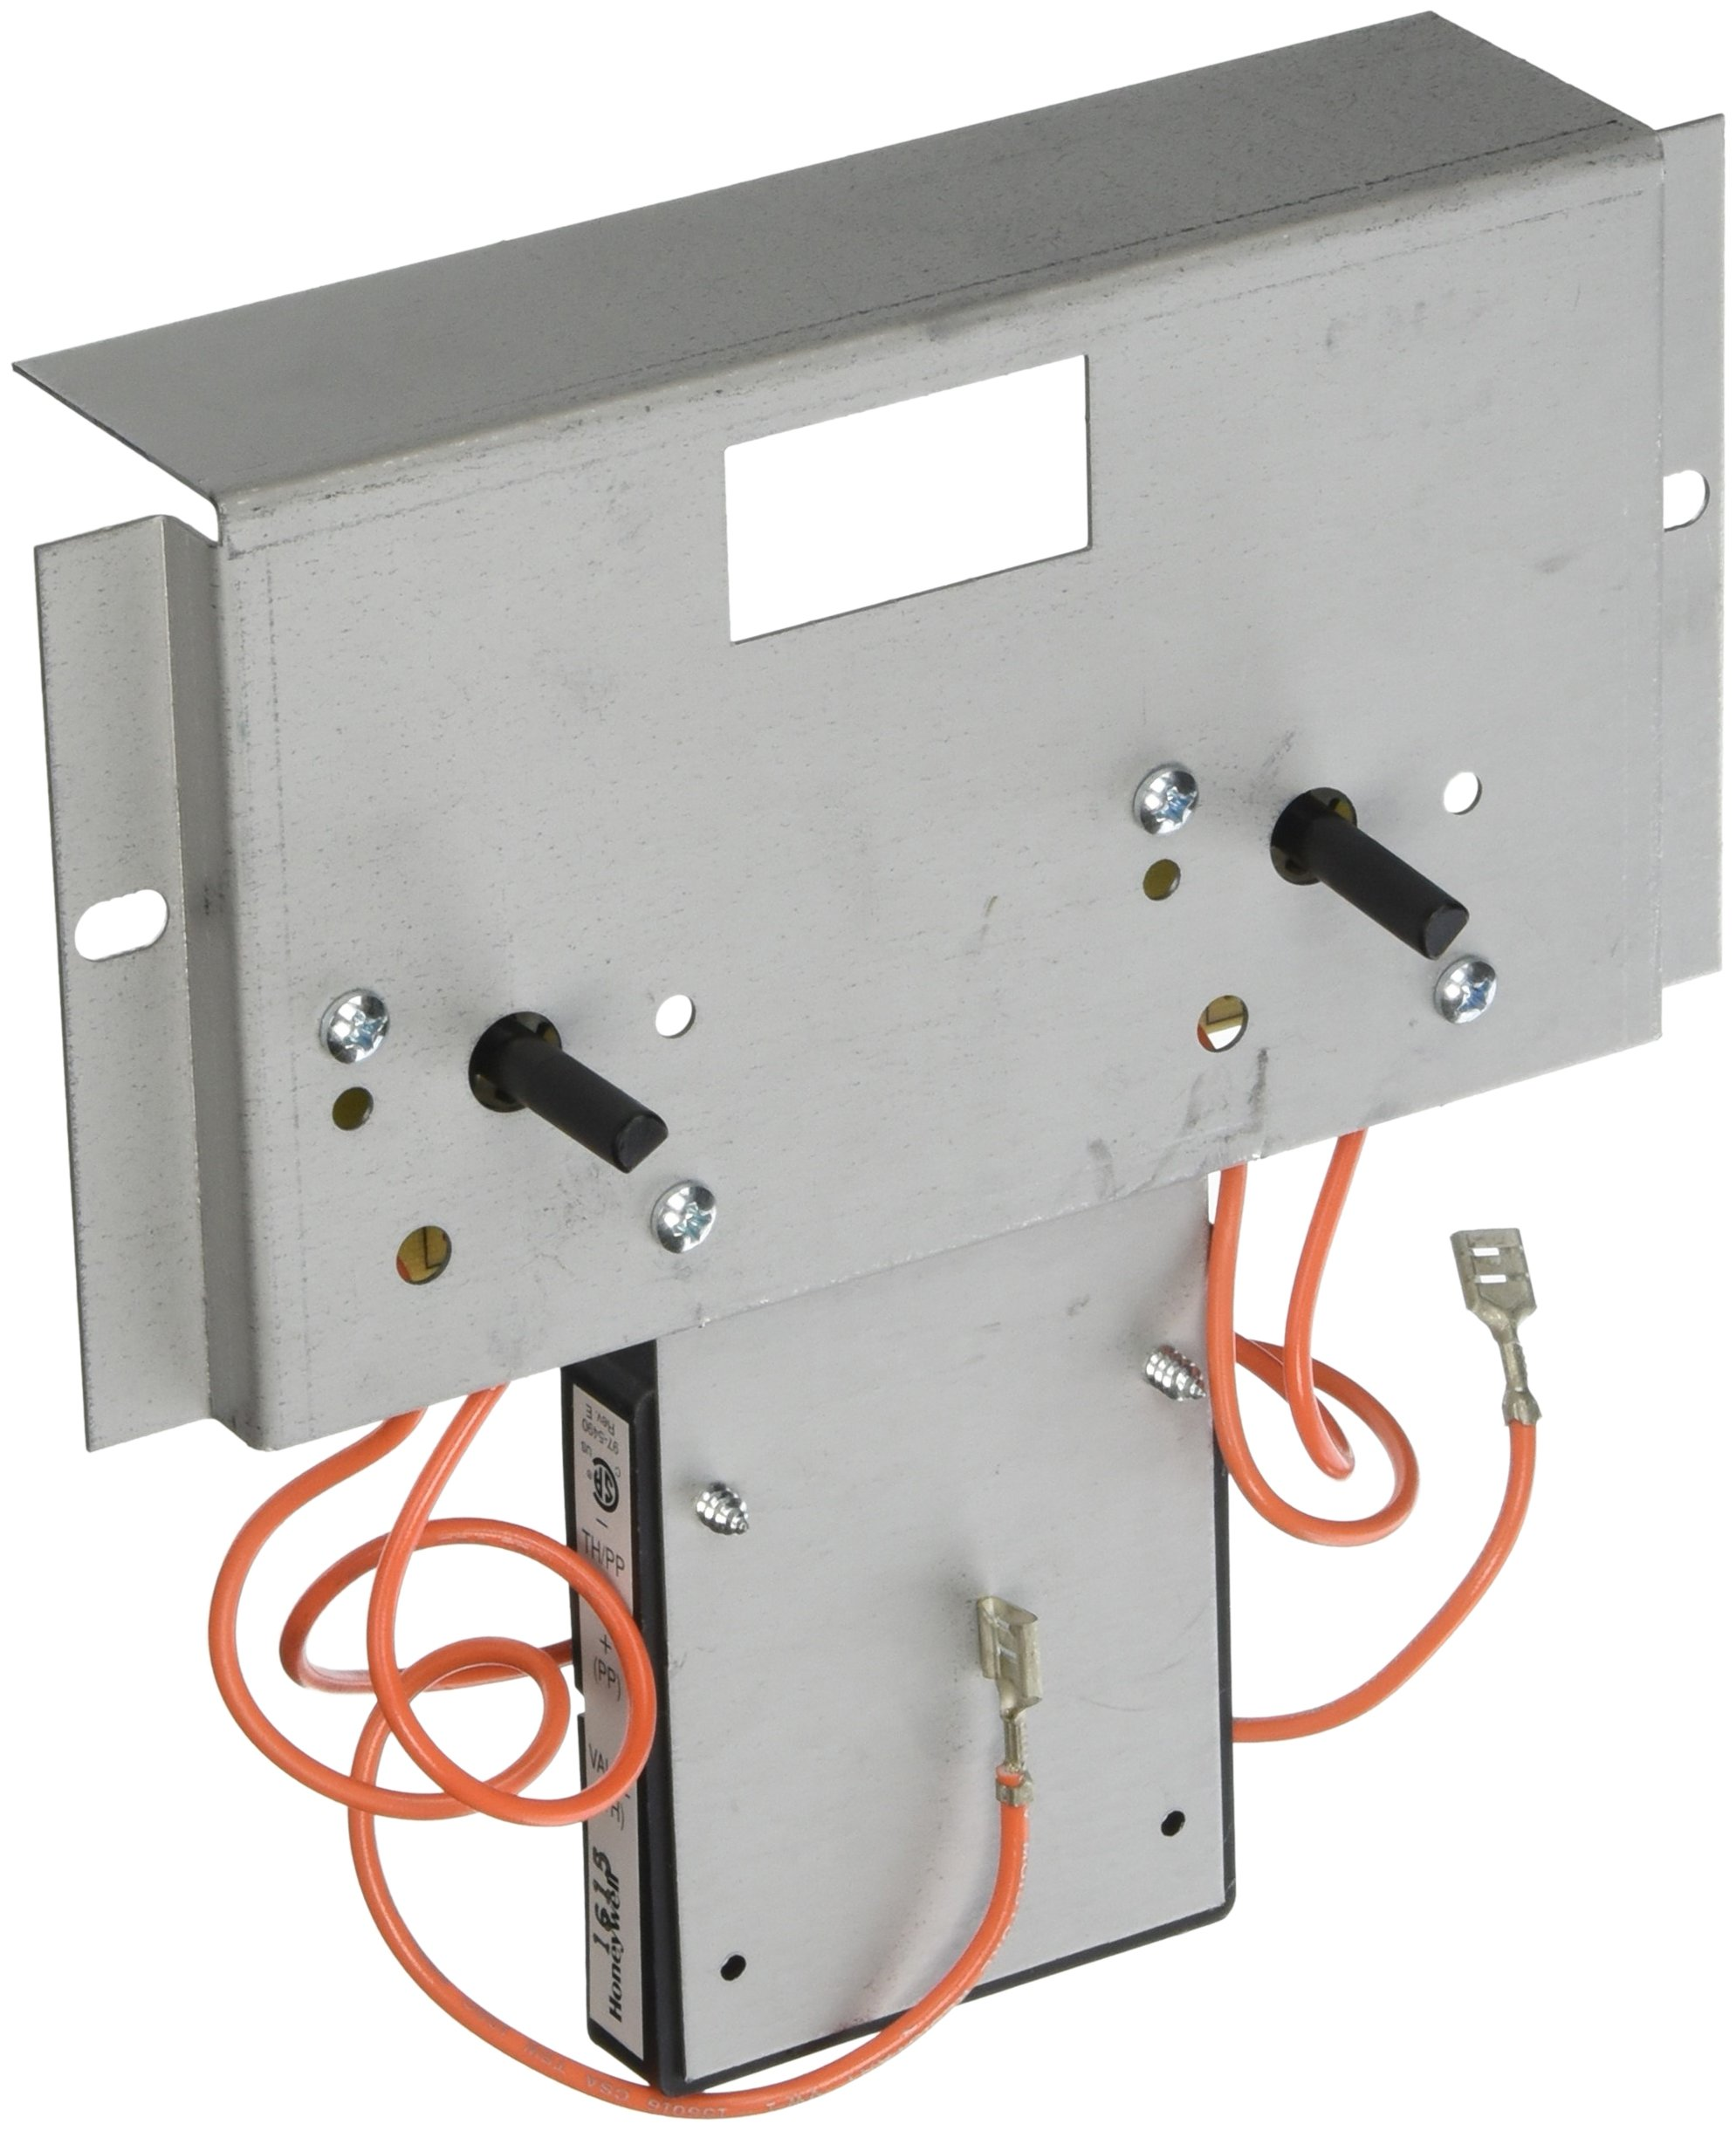 Pentair 471677 Millivolt Electronic Thermostat Replacement MiniMax CH and Plus Pool/Spa Heater